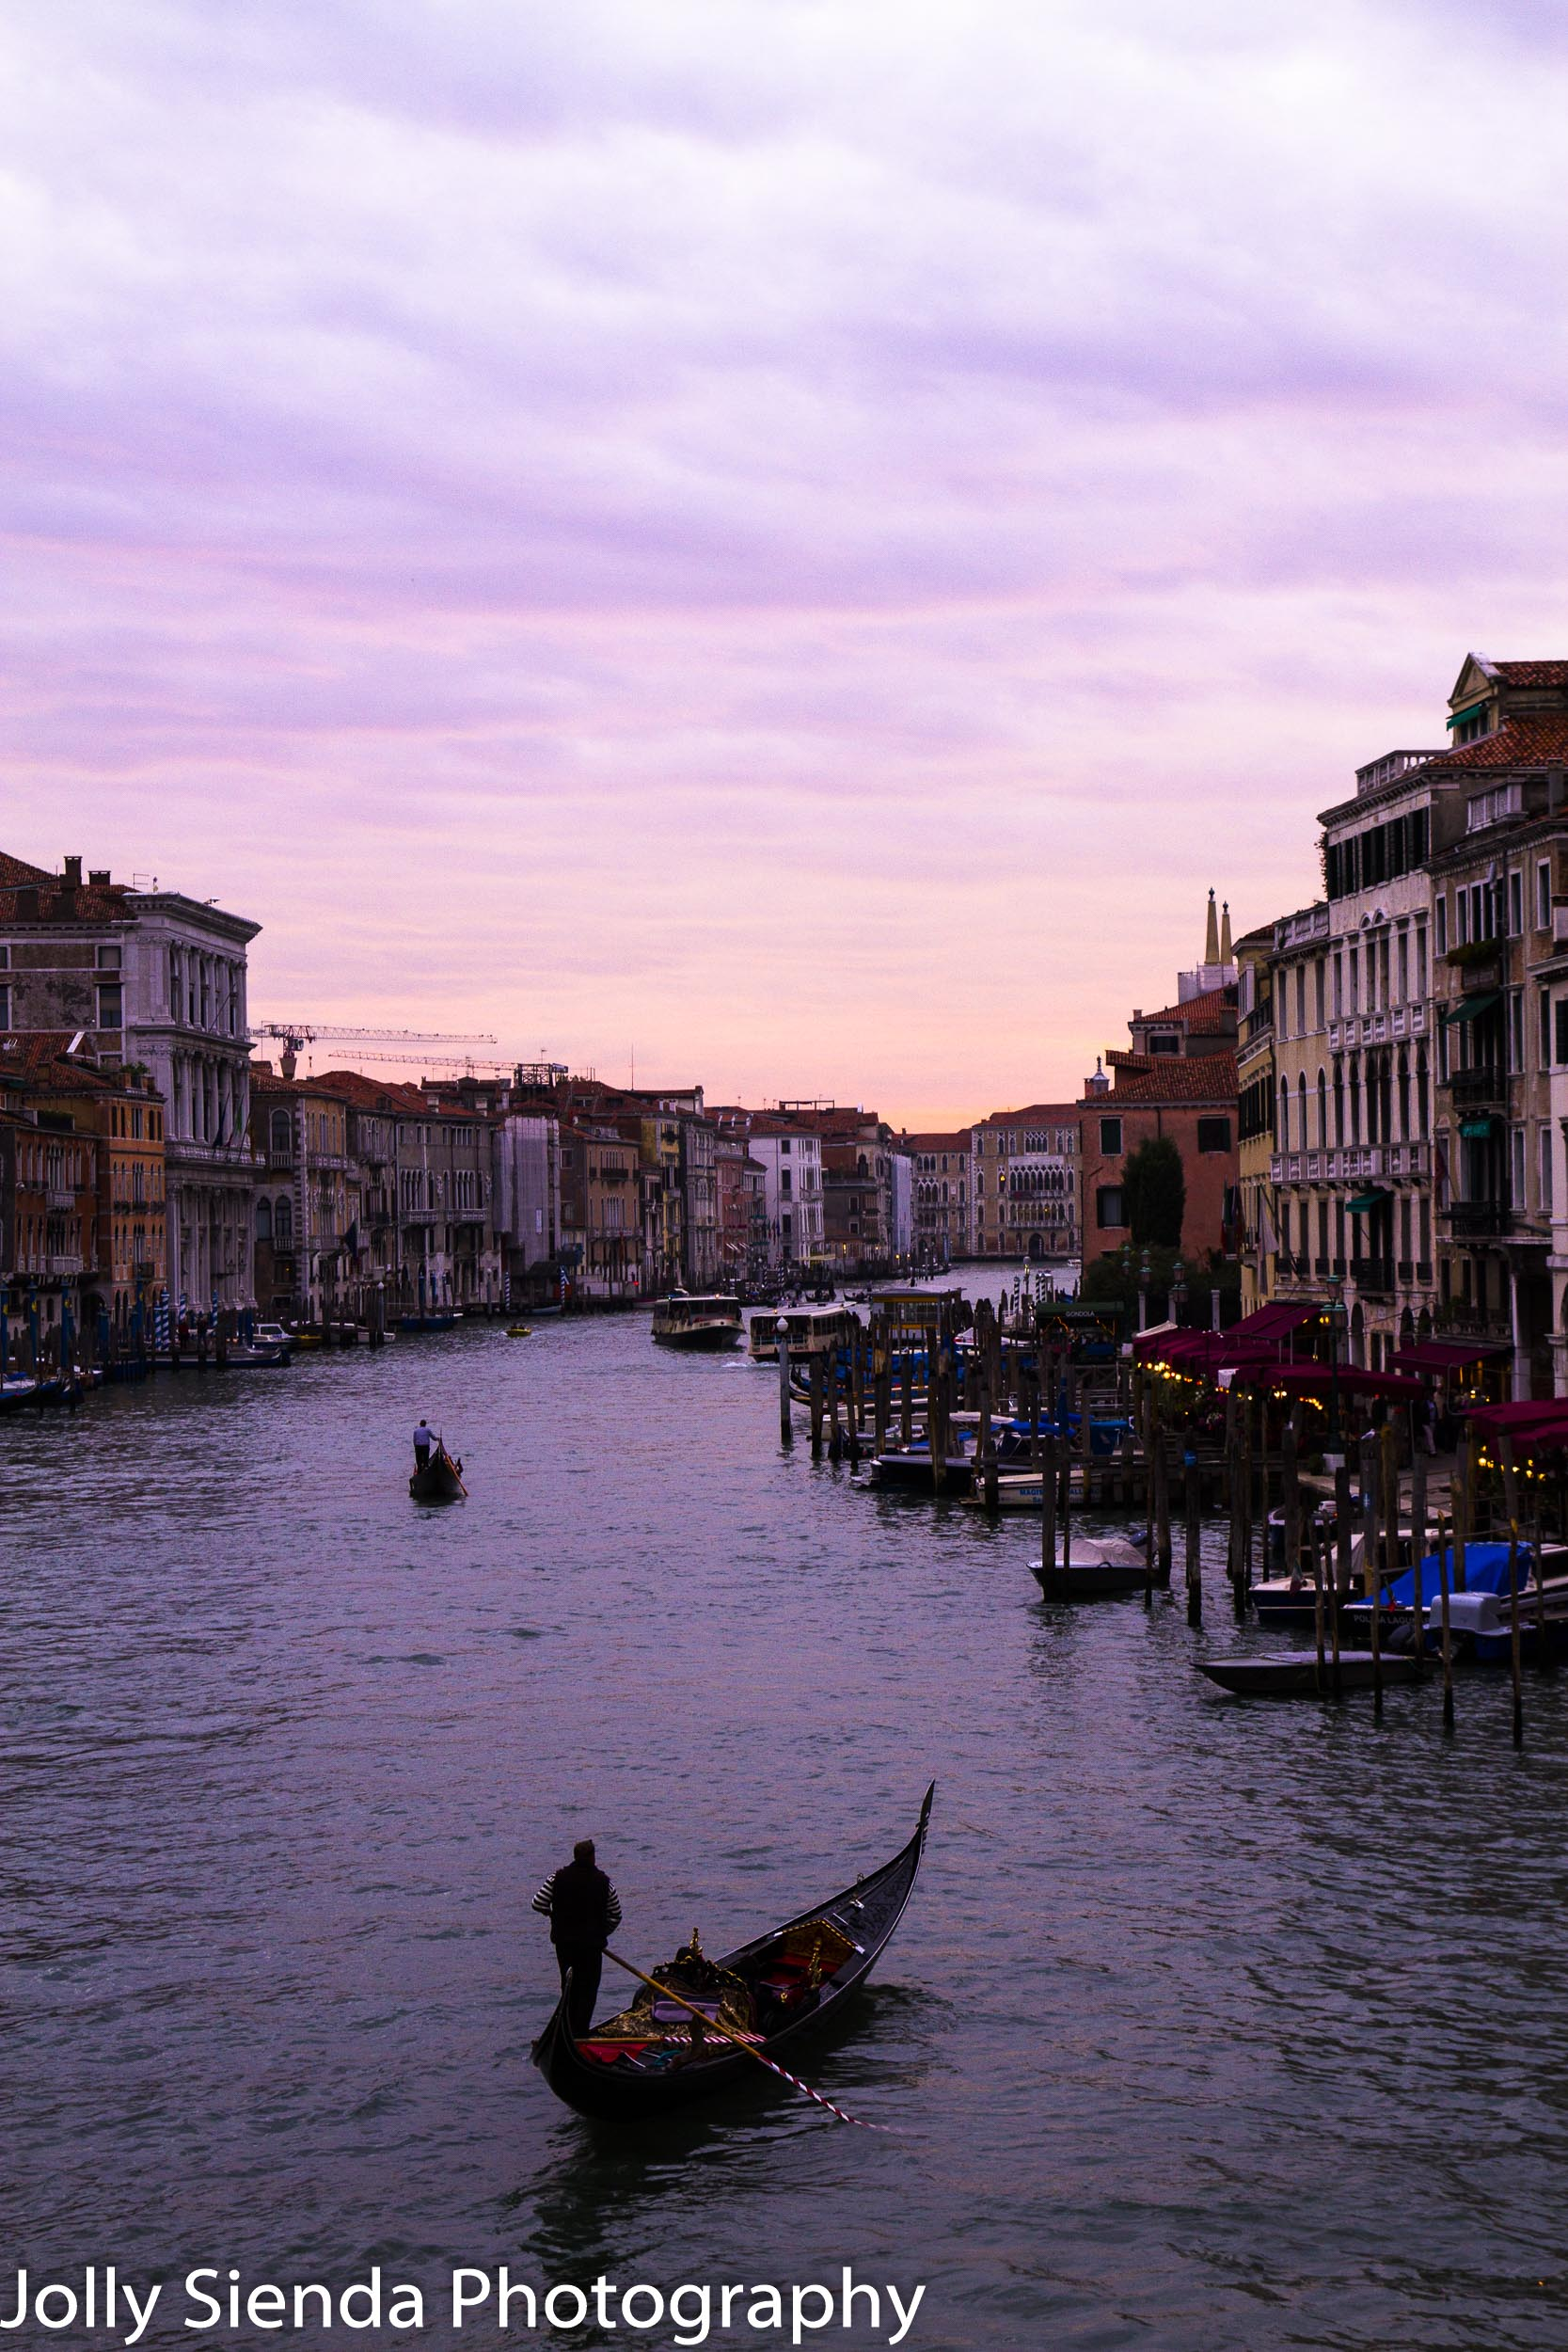 Gondalas on the Grand Canal at Sunset, travel photography